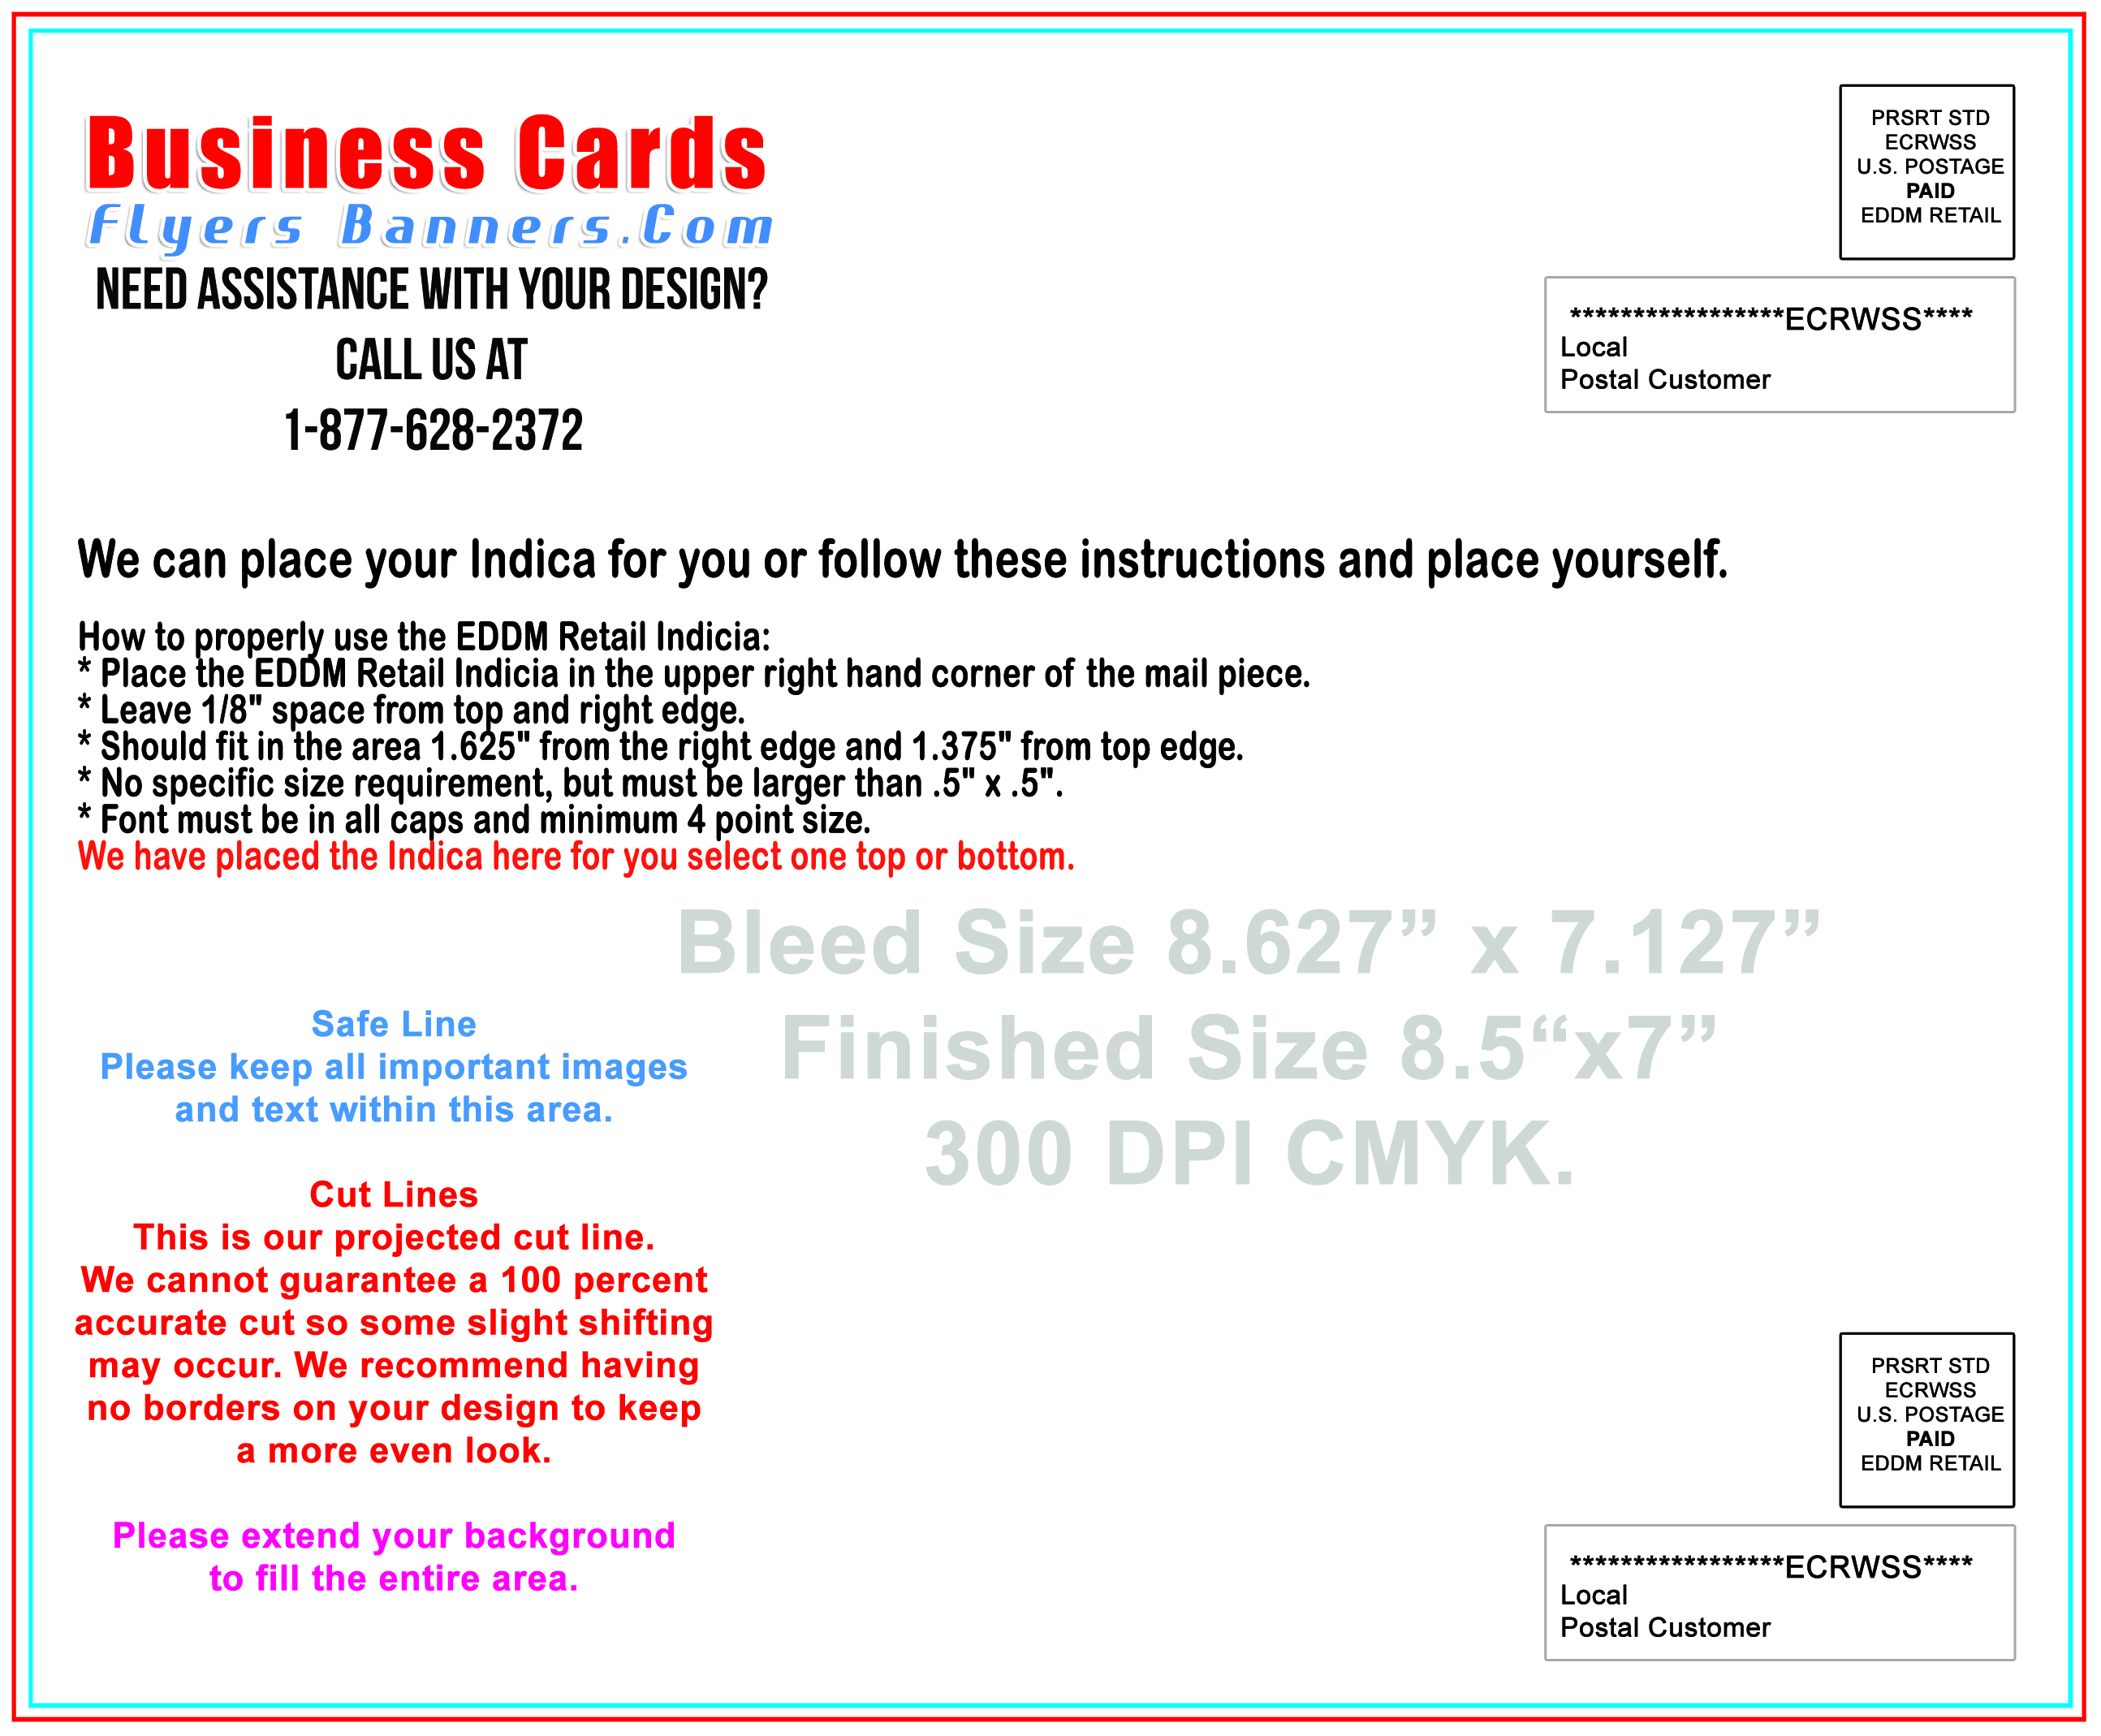 Postcard templates business cards flyers and banners for Usps every door direct mail template